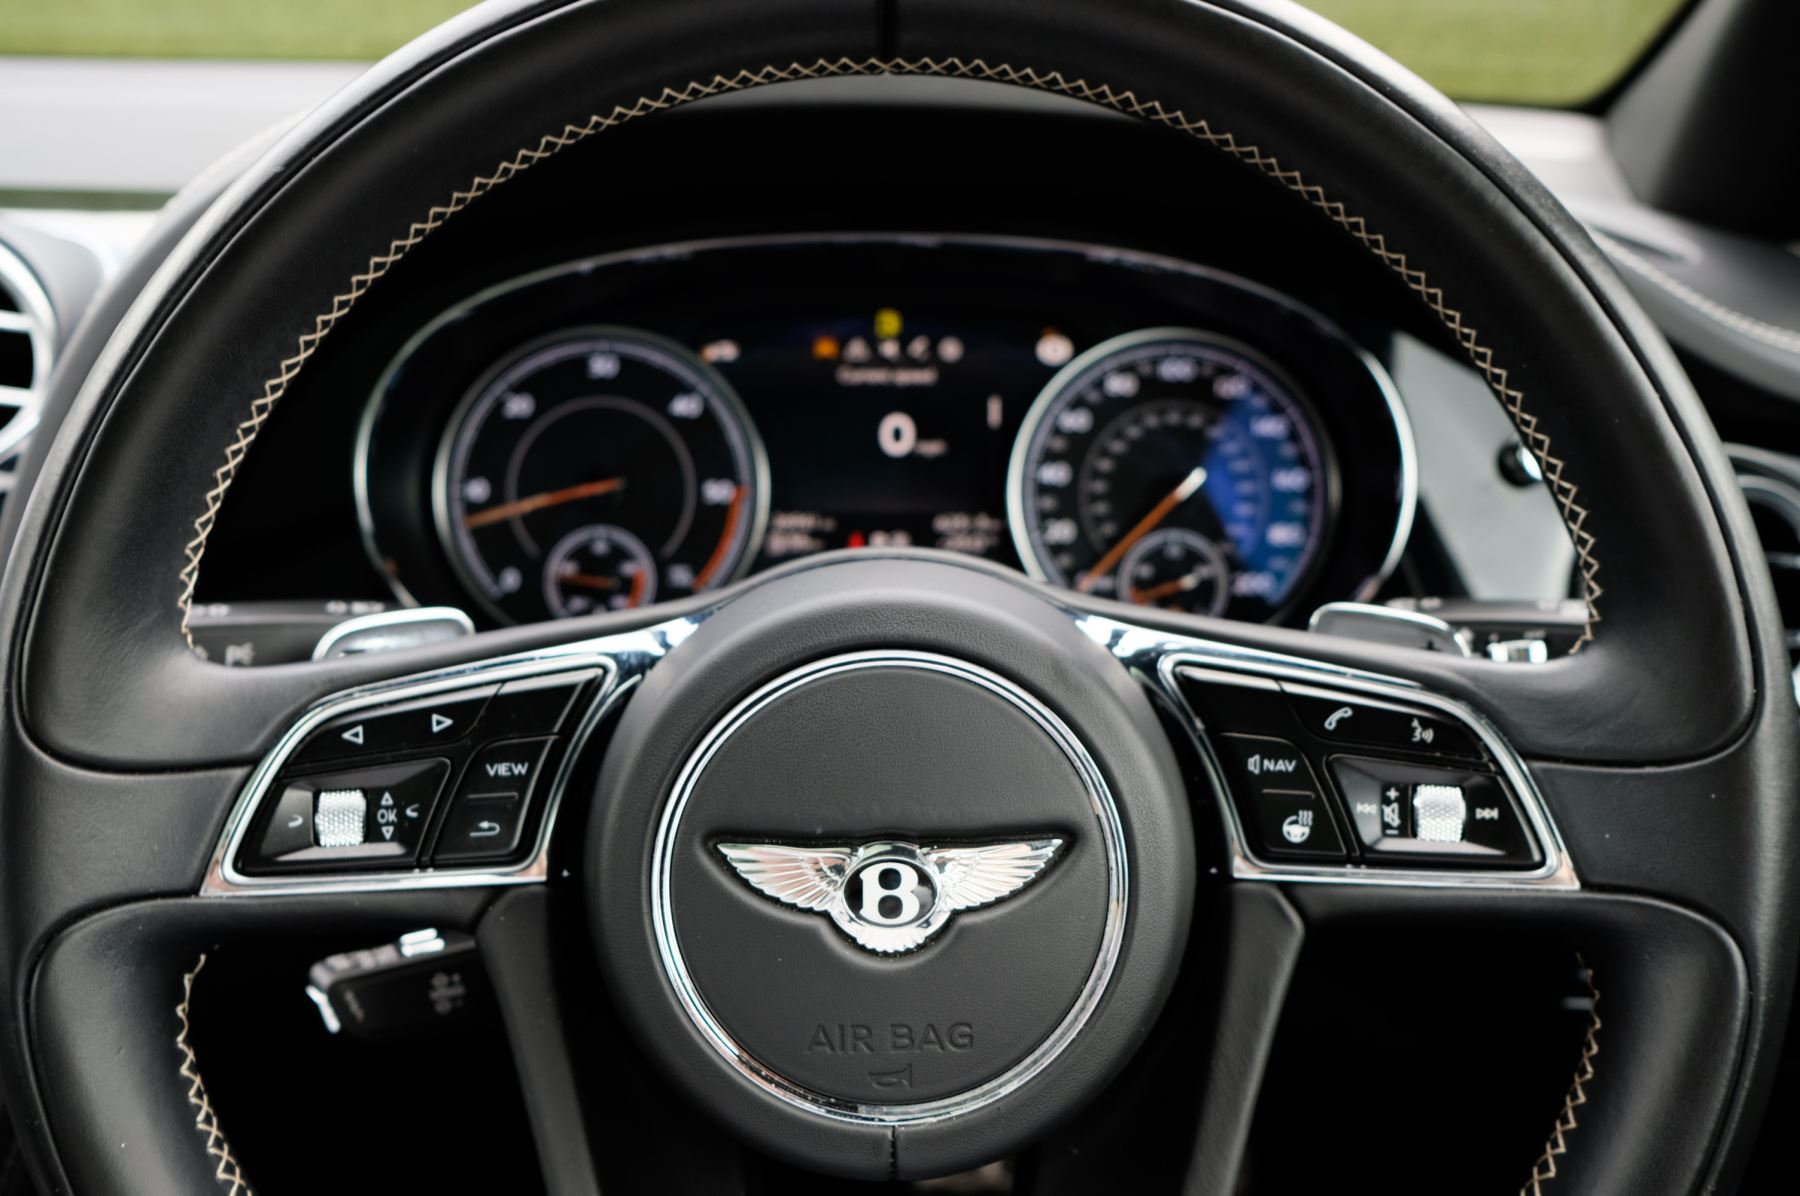 Bentley Bentayga 4.0 V8 5dr - Mulliner Driving Specification with 22 Inch Five Spoke Direction Alloys  image 15